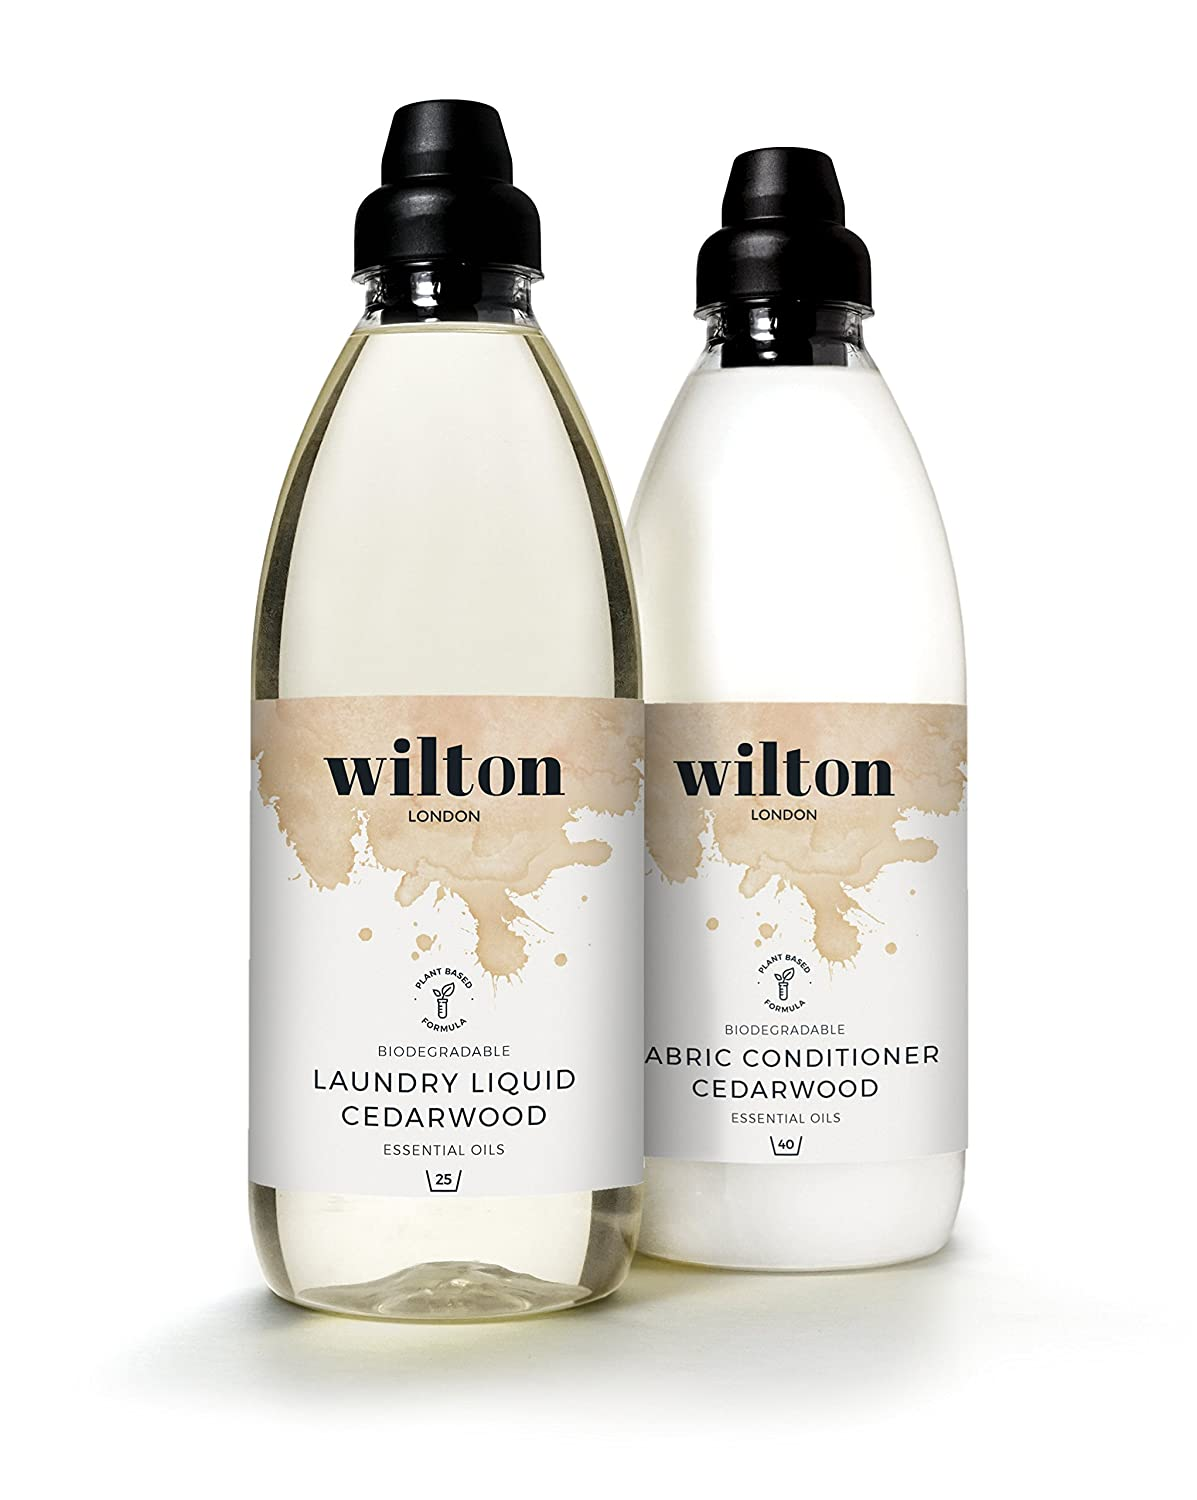 Wilton London Eco Laundry Liquid Detergent and Fabric Conditioner - Cedarwood 2X1litre